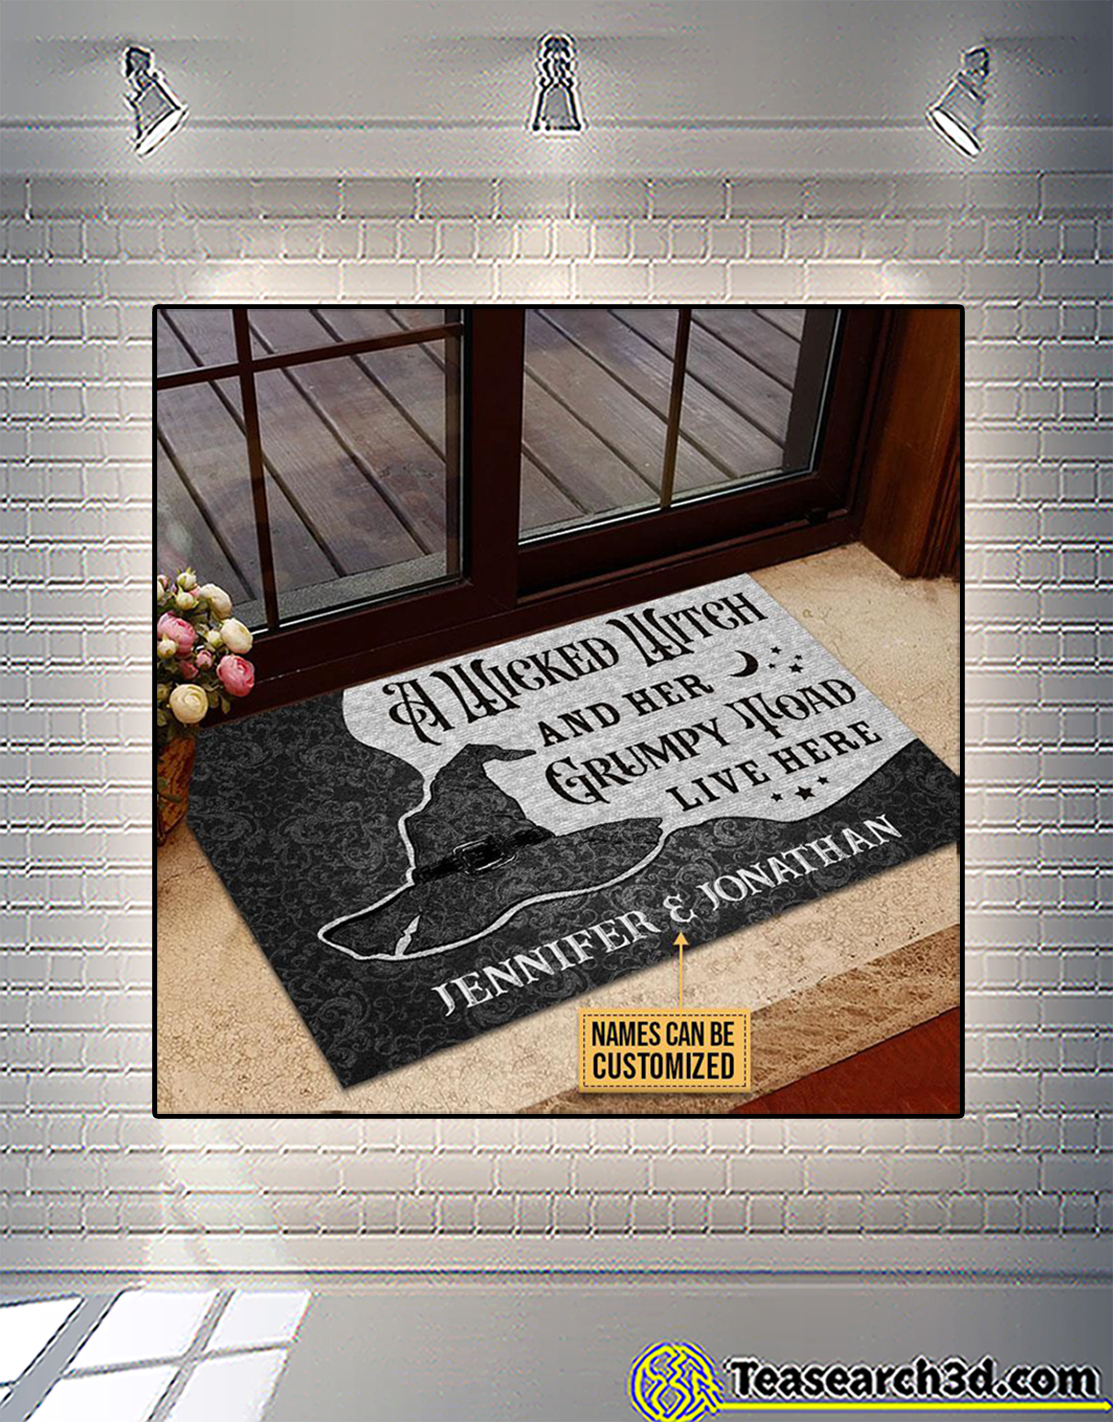 Personalized custom name a wicked witch and her grumpy toad live here doormat